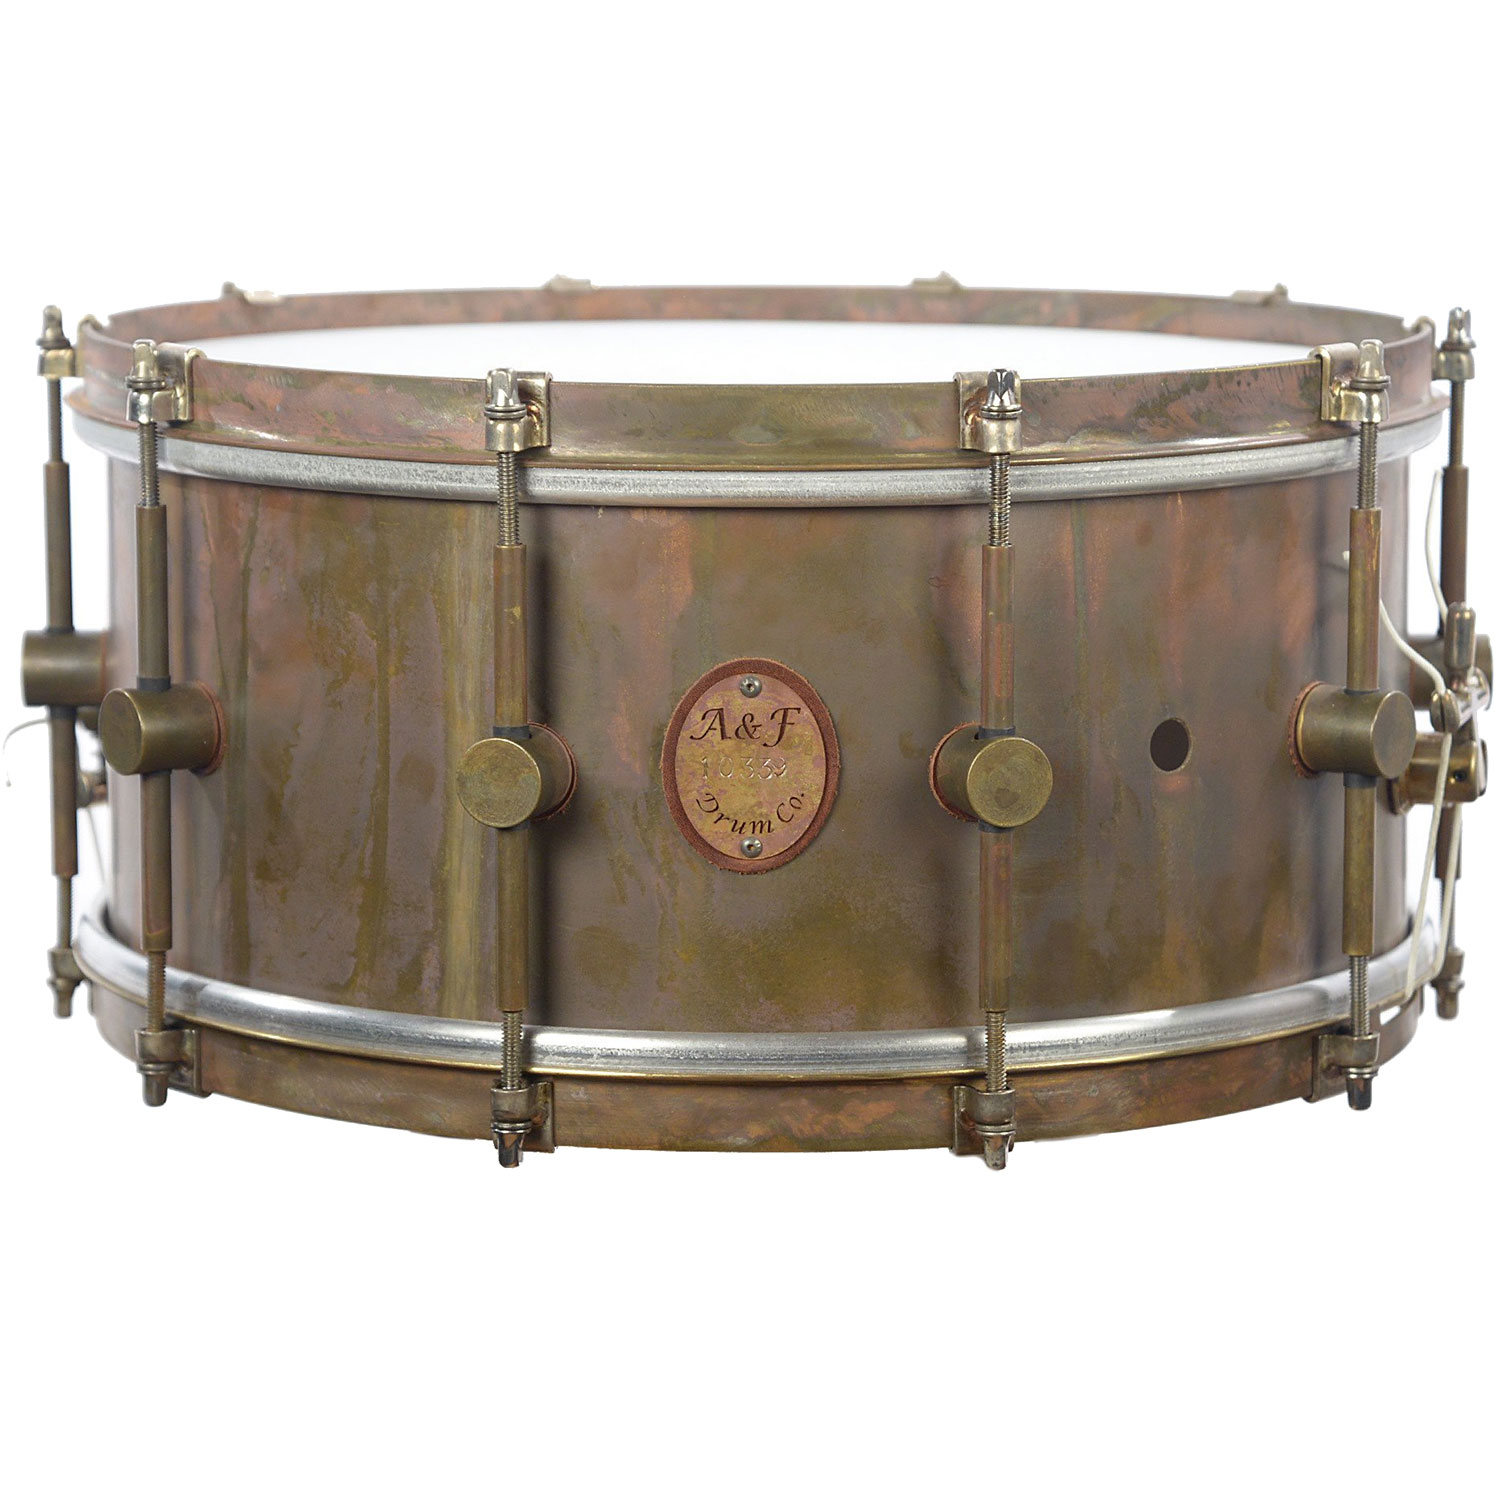 "A&F Drum Co. 6.5"" x 14"" Standard Snare Drum"